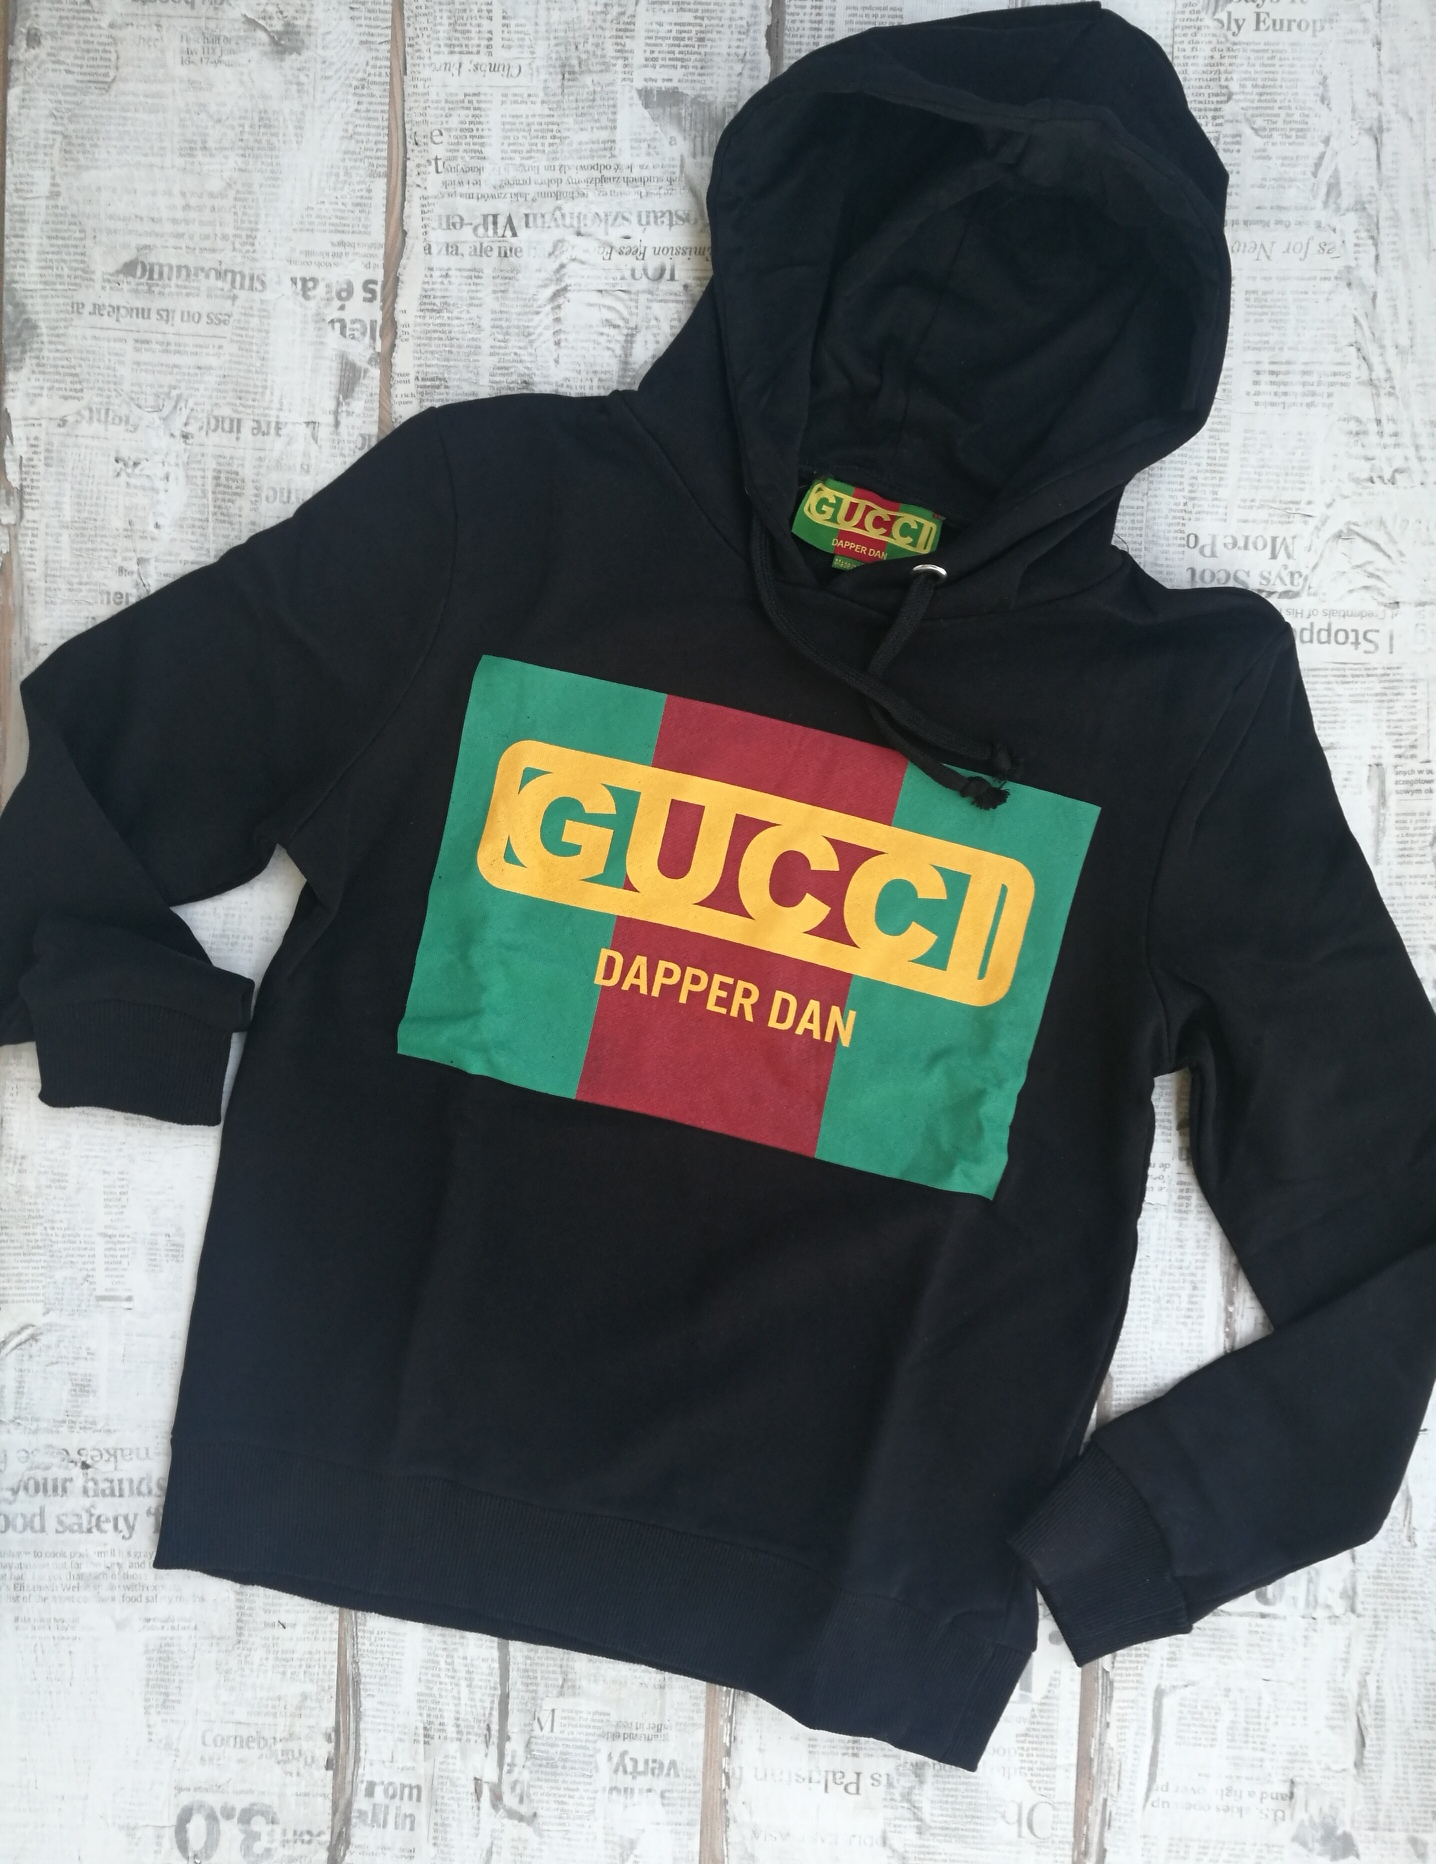 0b6e8c2aa Gucci Dapper Dan Hooded Cotton Men's Sweatshirt on Storenvy